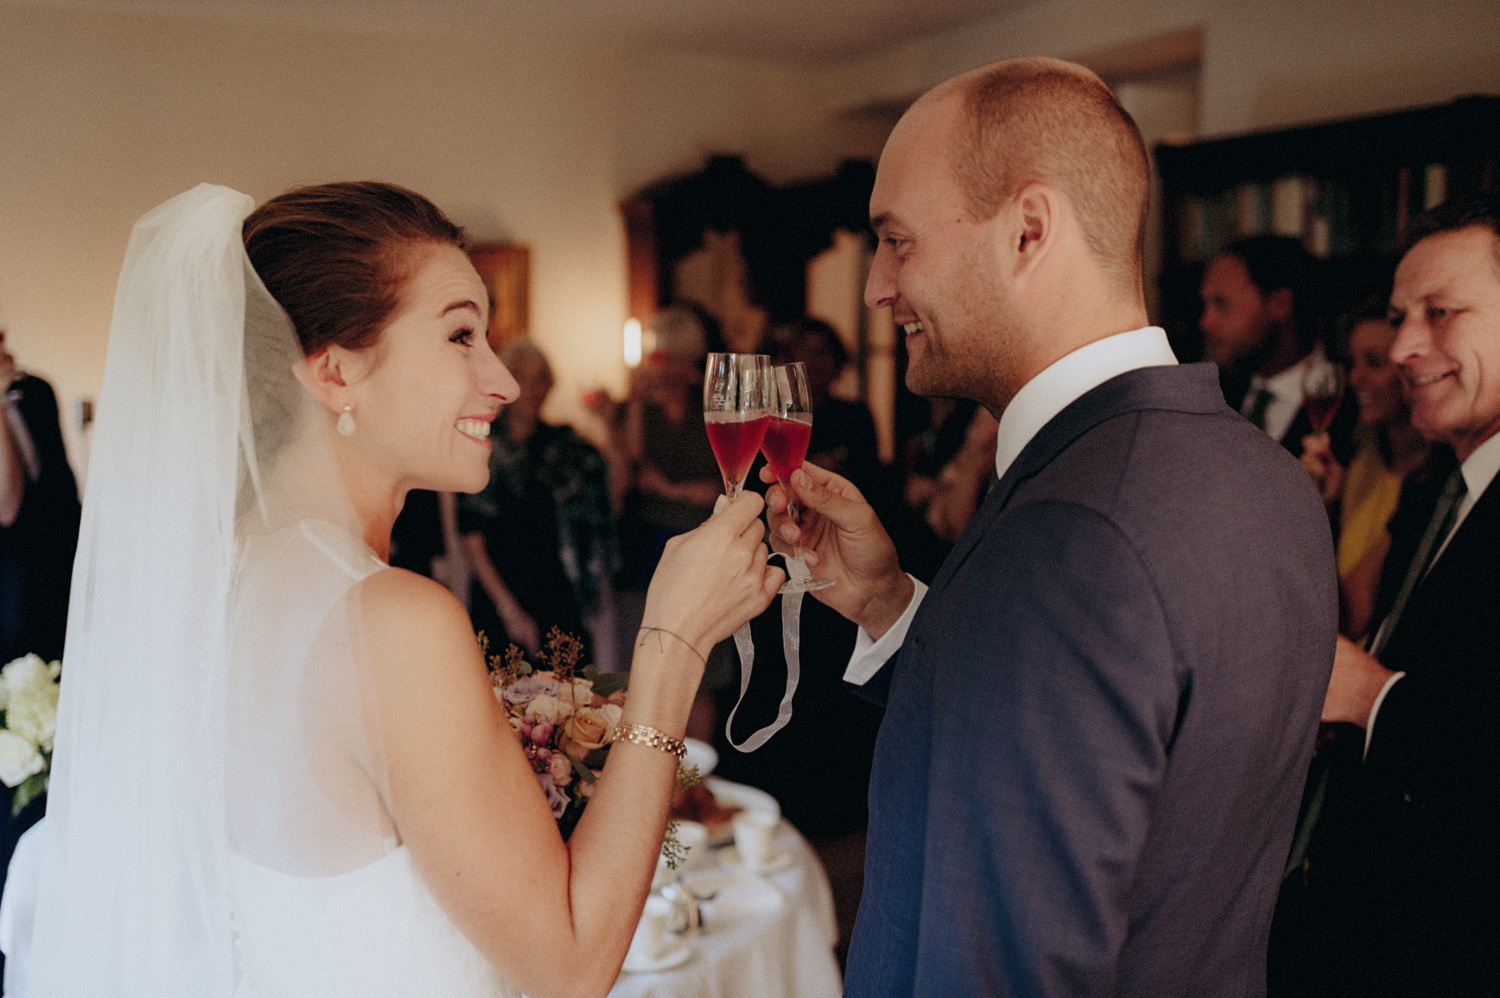 Groom and bride saying cheers with glasses of champagne